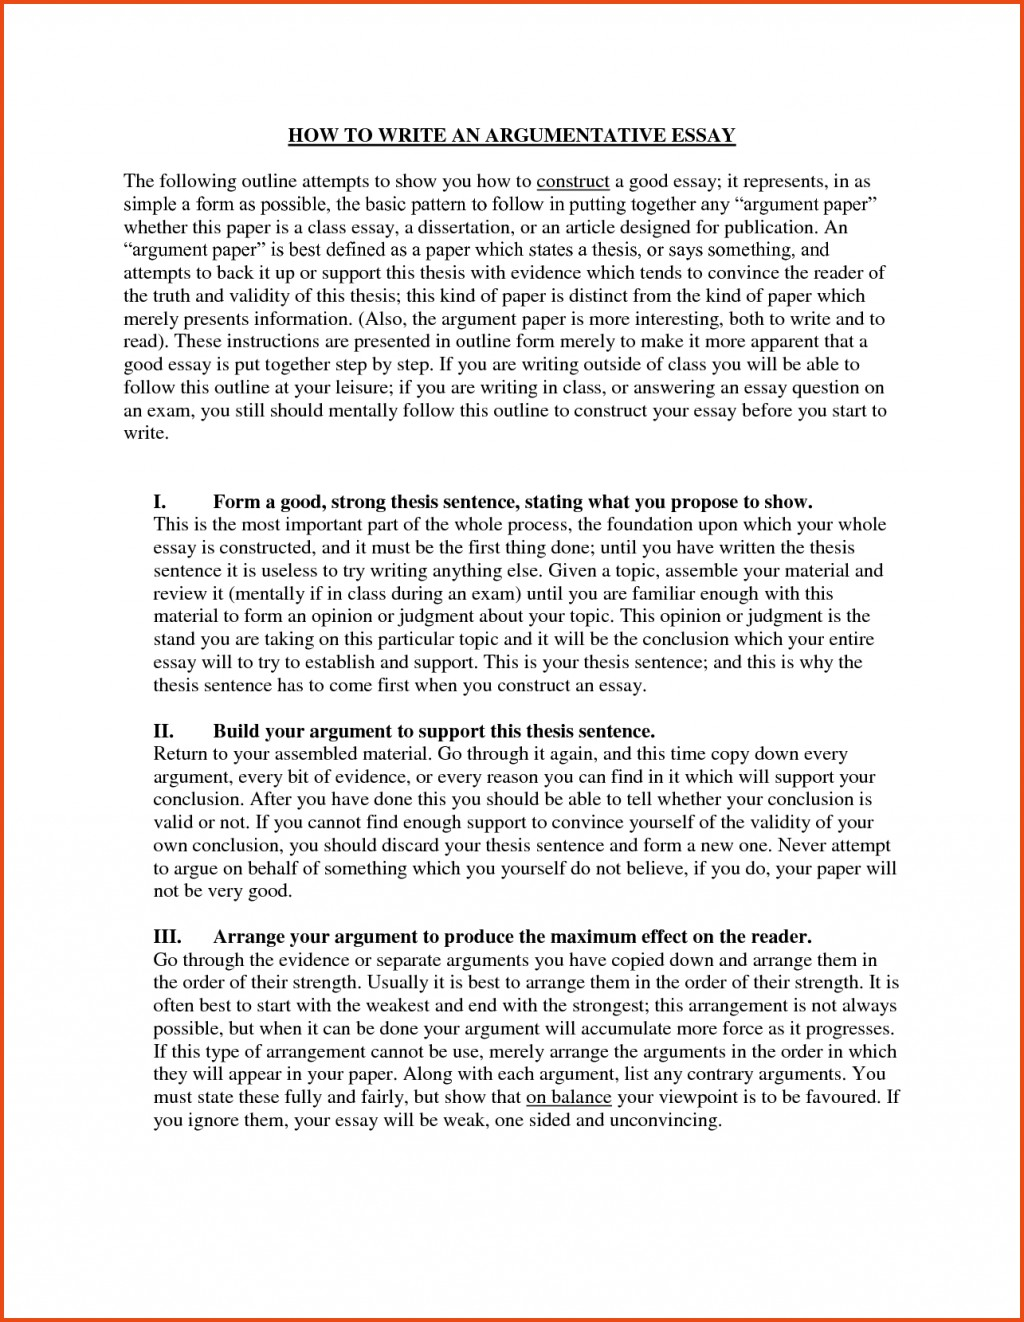 003 Ways To Start An Essay How About Me Help Check Rush Examples Do I Good Way L Expository Academic Application Writing Argumentative Informative Analysis Conclusion Unusual A College Hook Best Introduction Observation Large